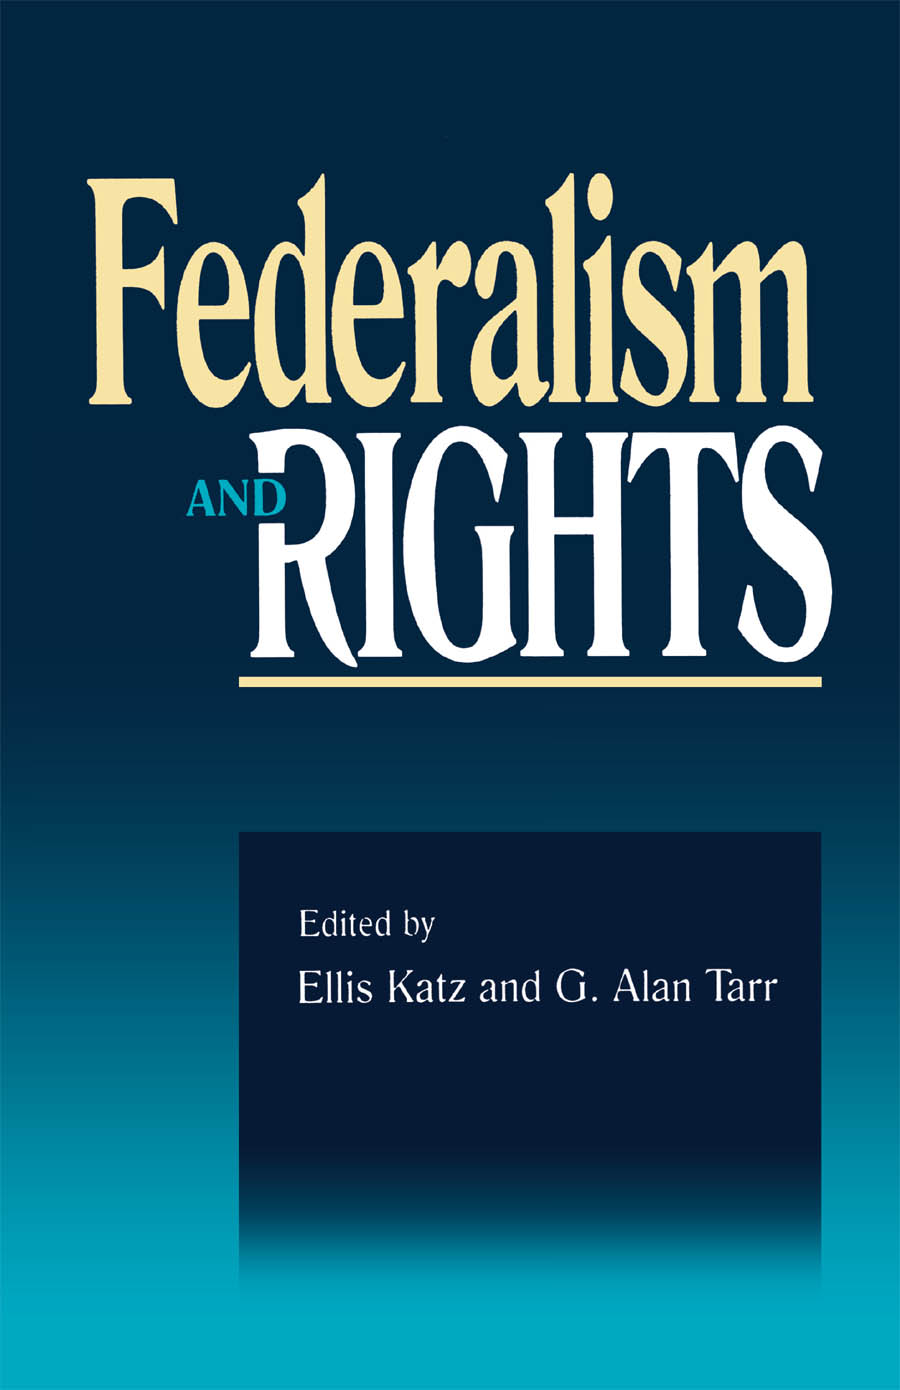 Federalism and Rights